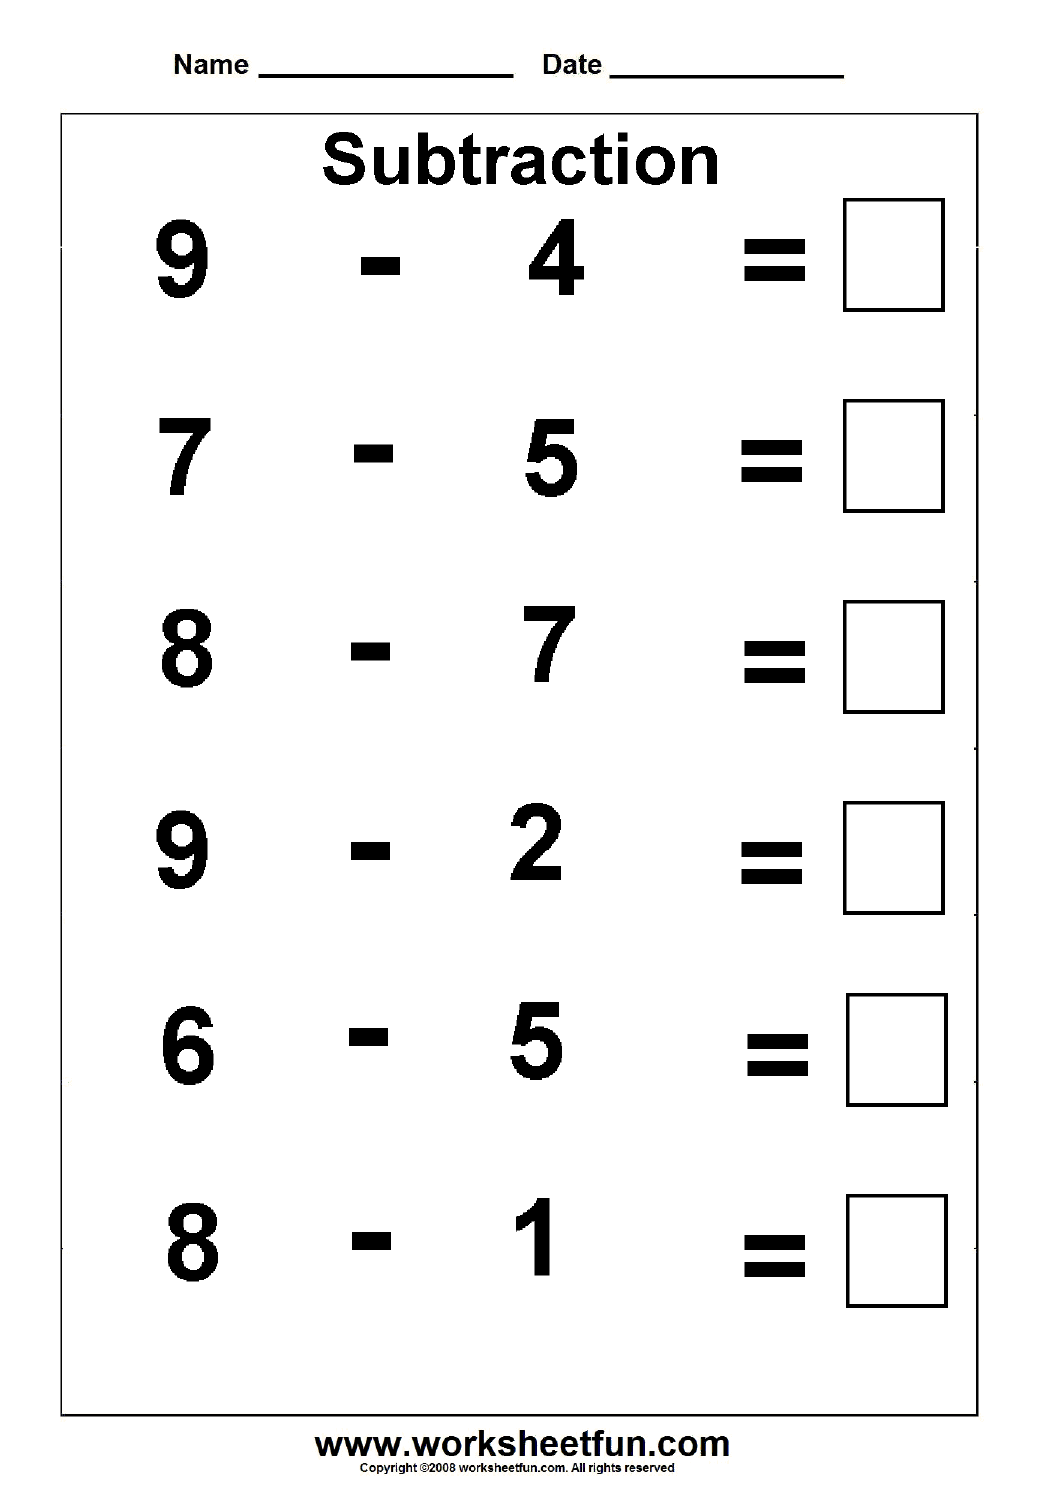 Worksheets Subtractions Worksheets subtraction firstgrade learning pinterest subtraction